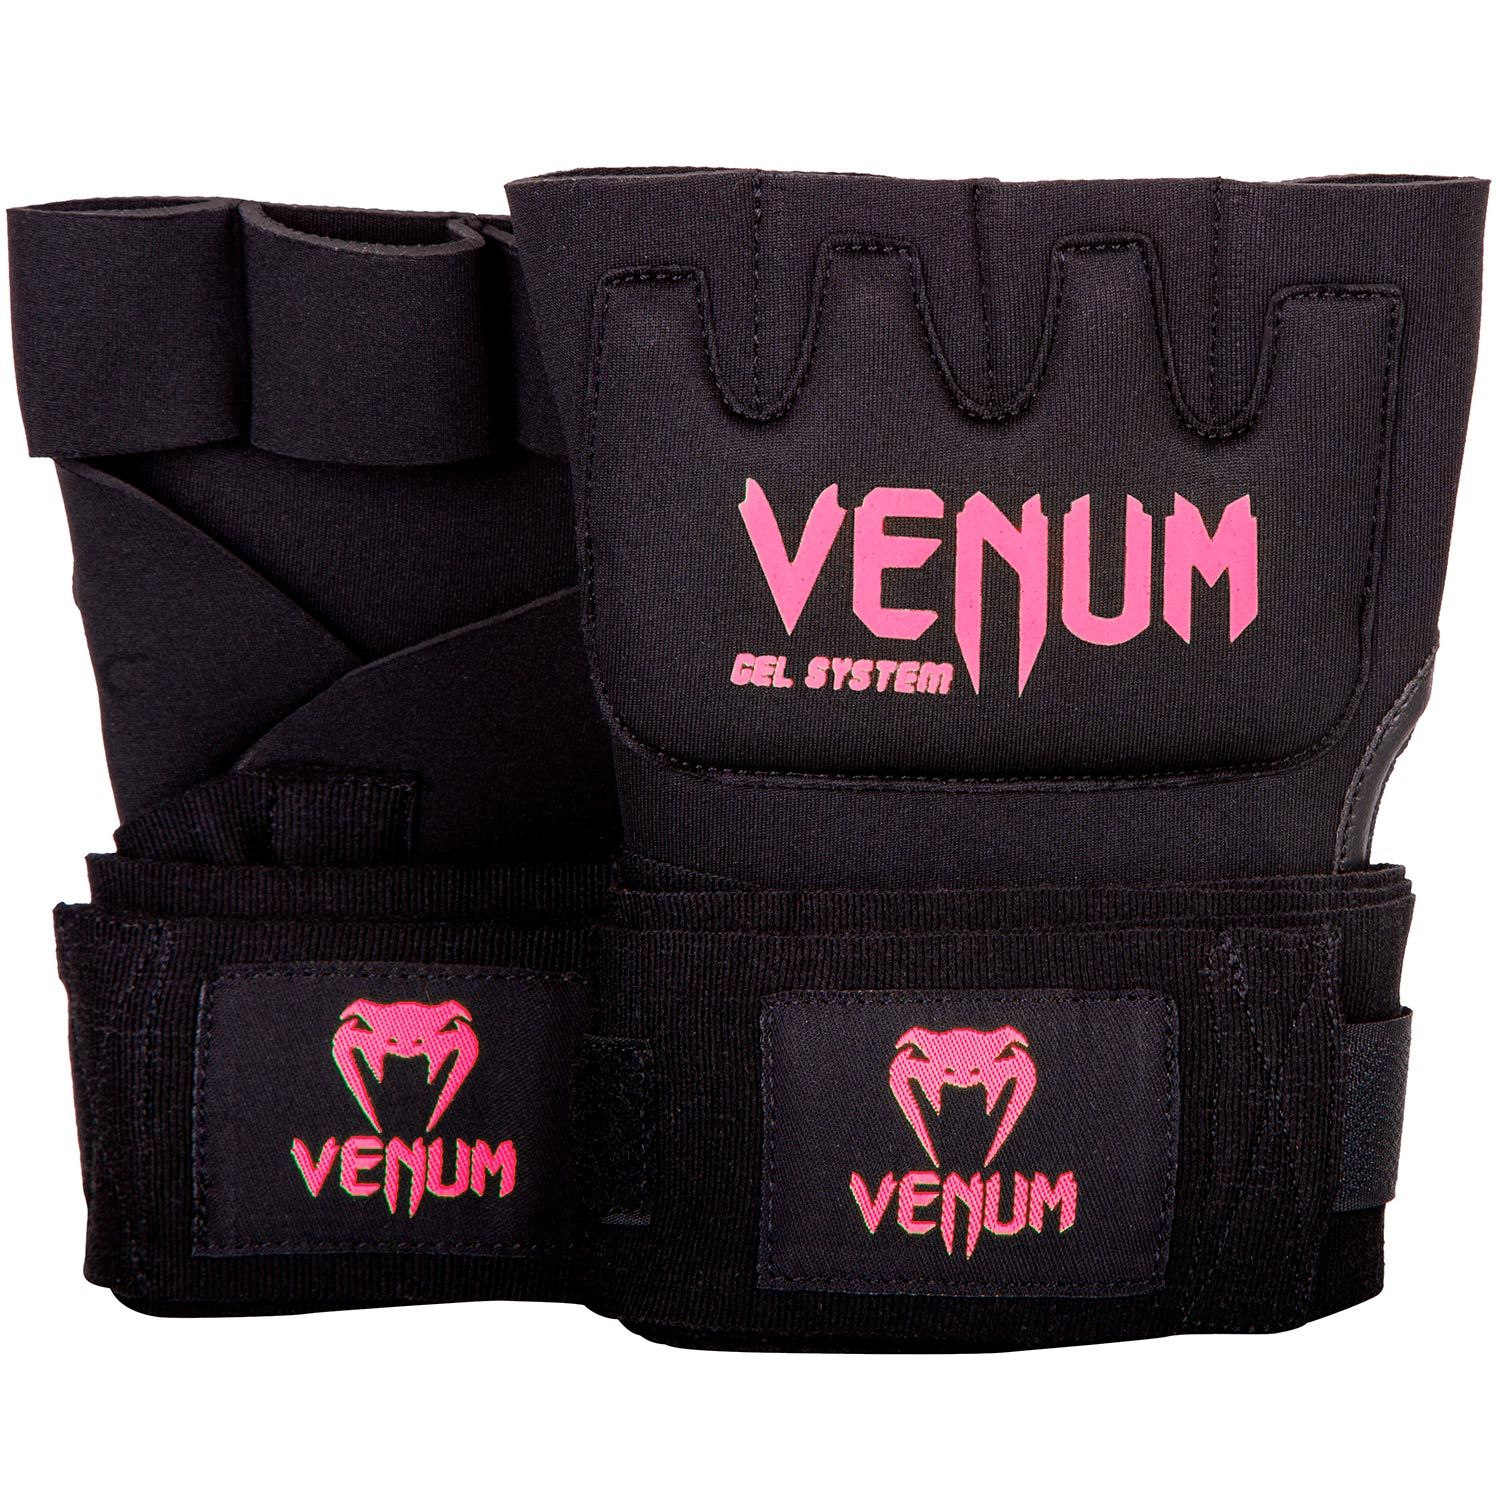 Venum Kontact Gel Glove Wraps